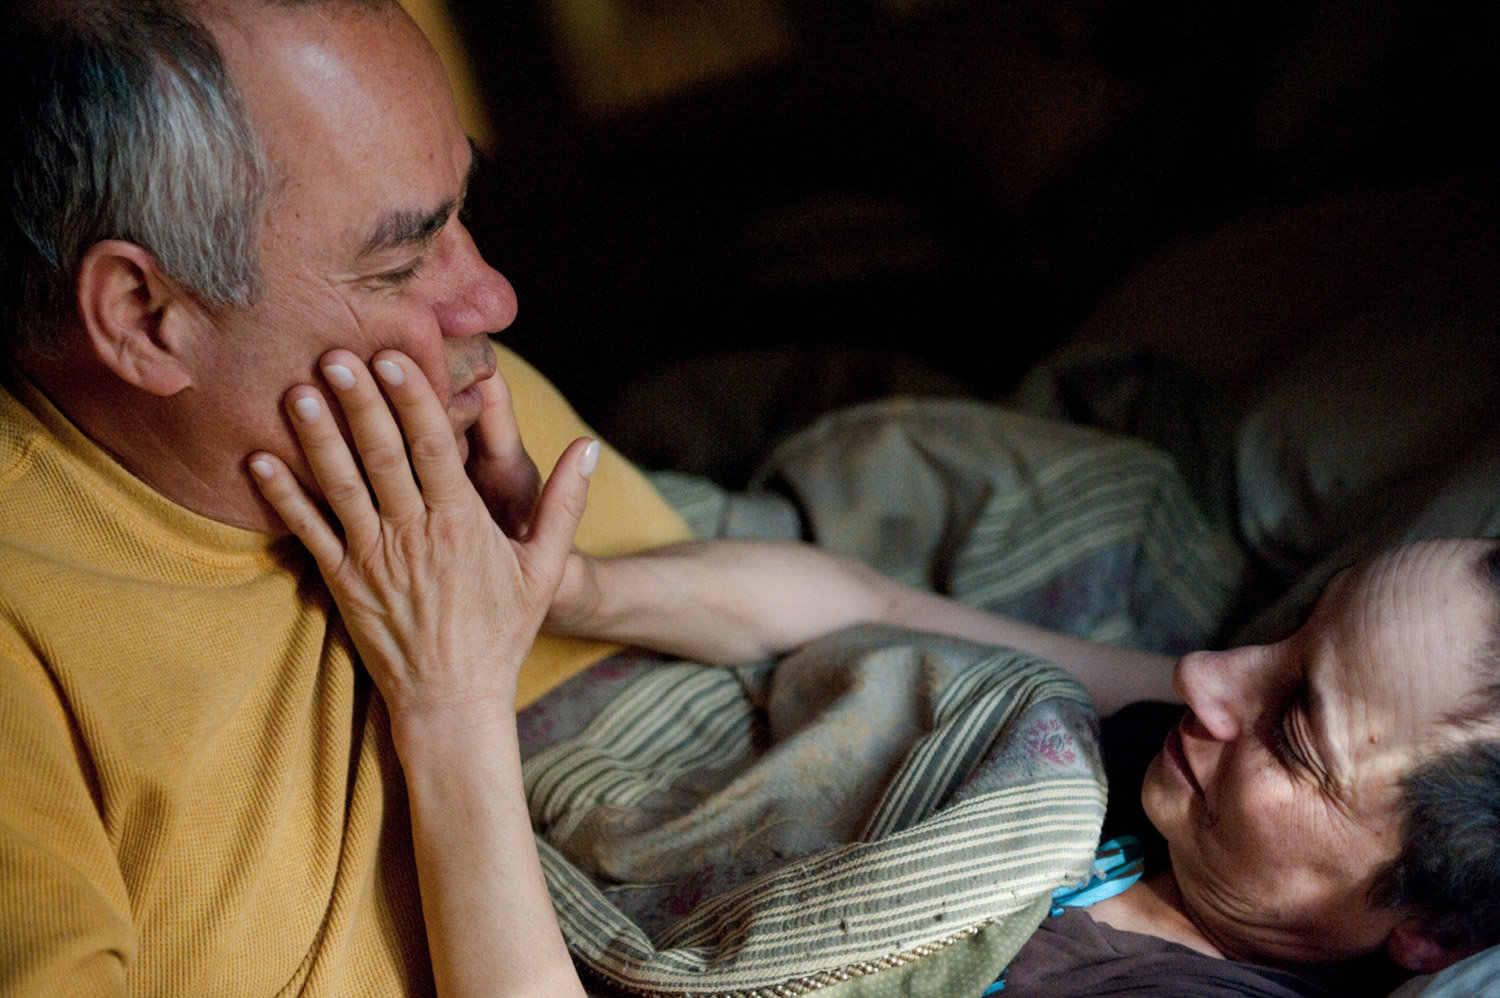 Howard Borowick, Laurel's husband and best friend for more than 30 years, gently wakes her up, February 2010.